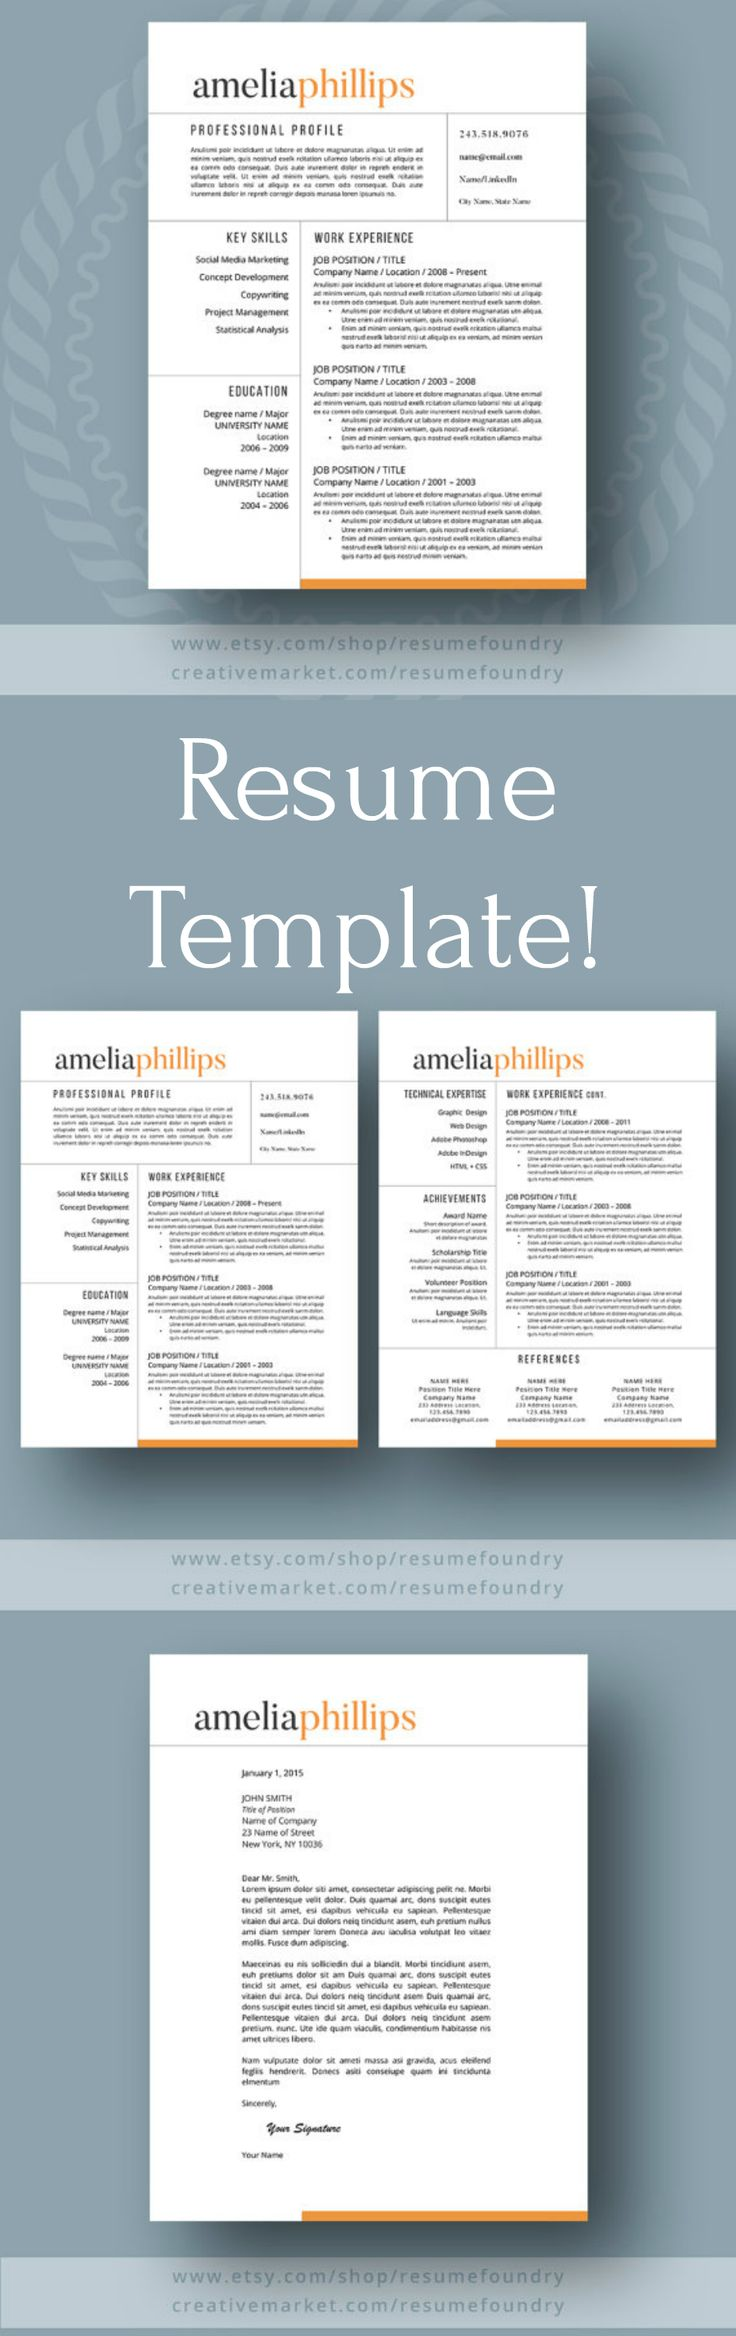 Complete And Stylish Resume Template To Help You Get That Perfect Job!!  This Professionally